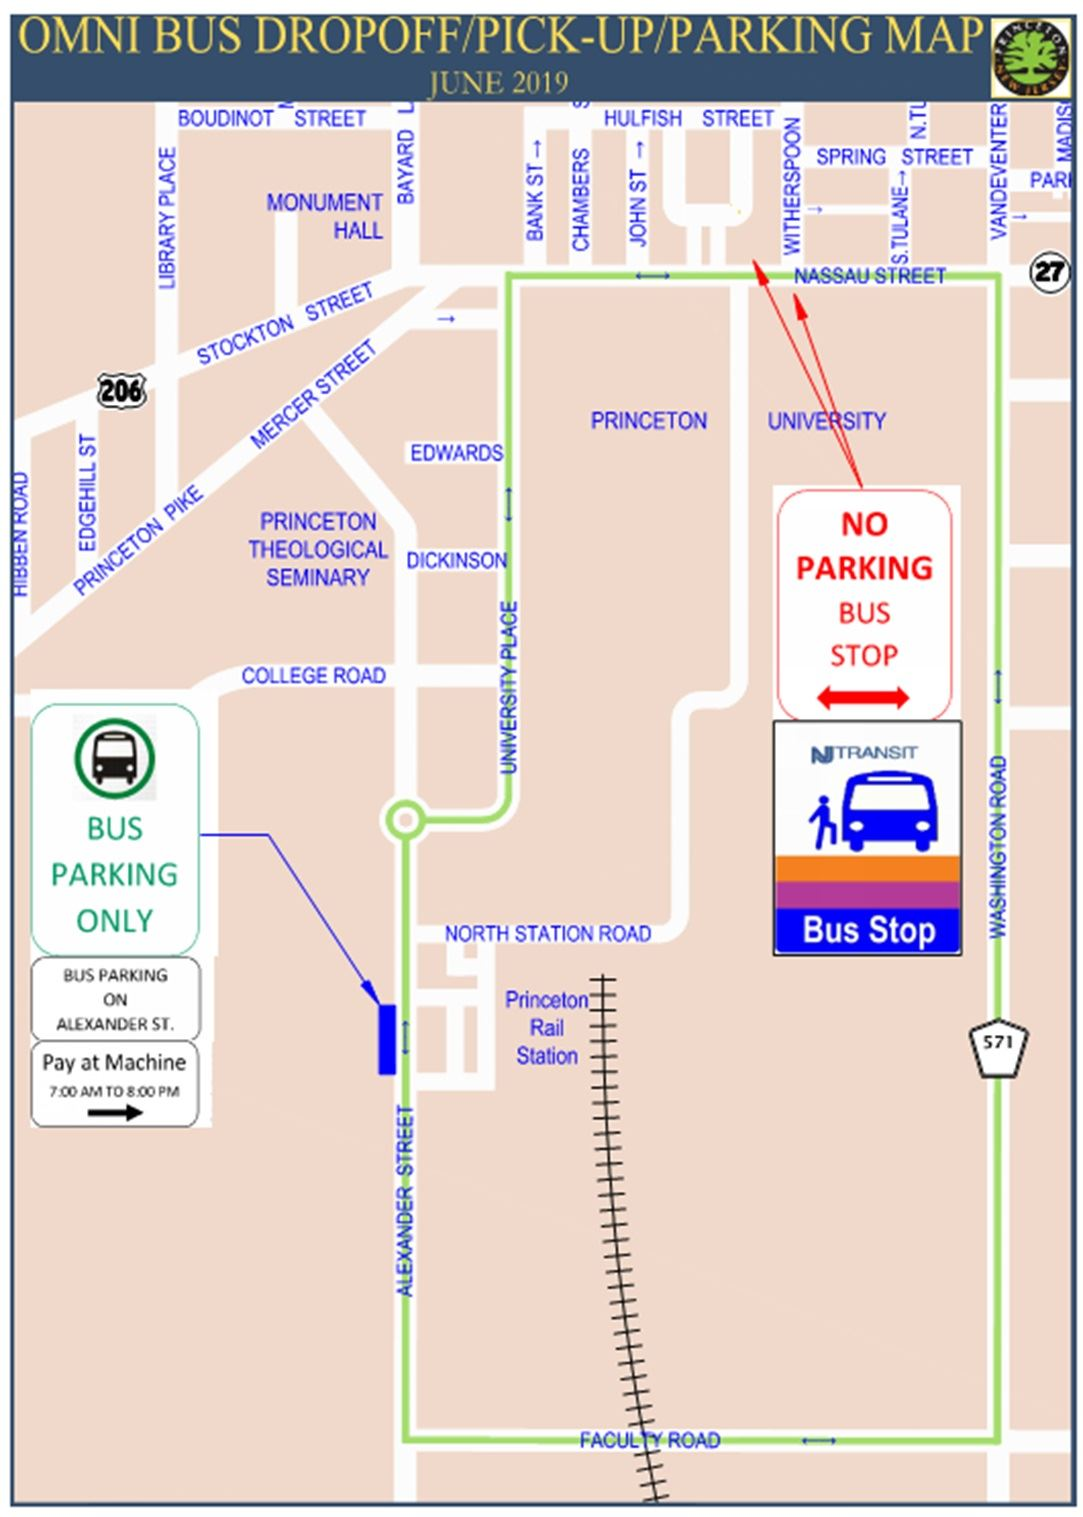 Omnibus Dropoff, Pick-Up, and Parking Map (PDF)